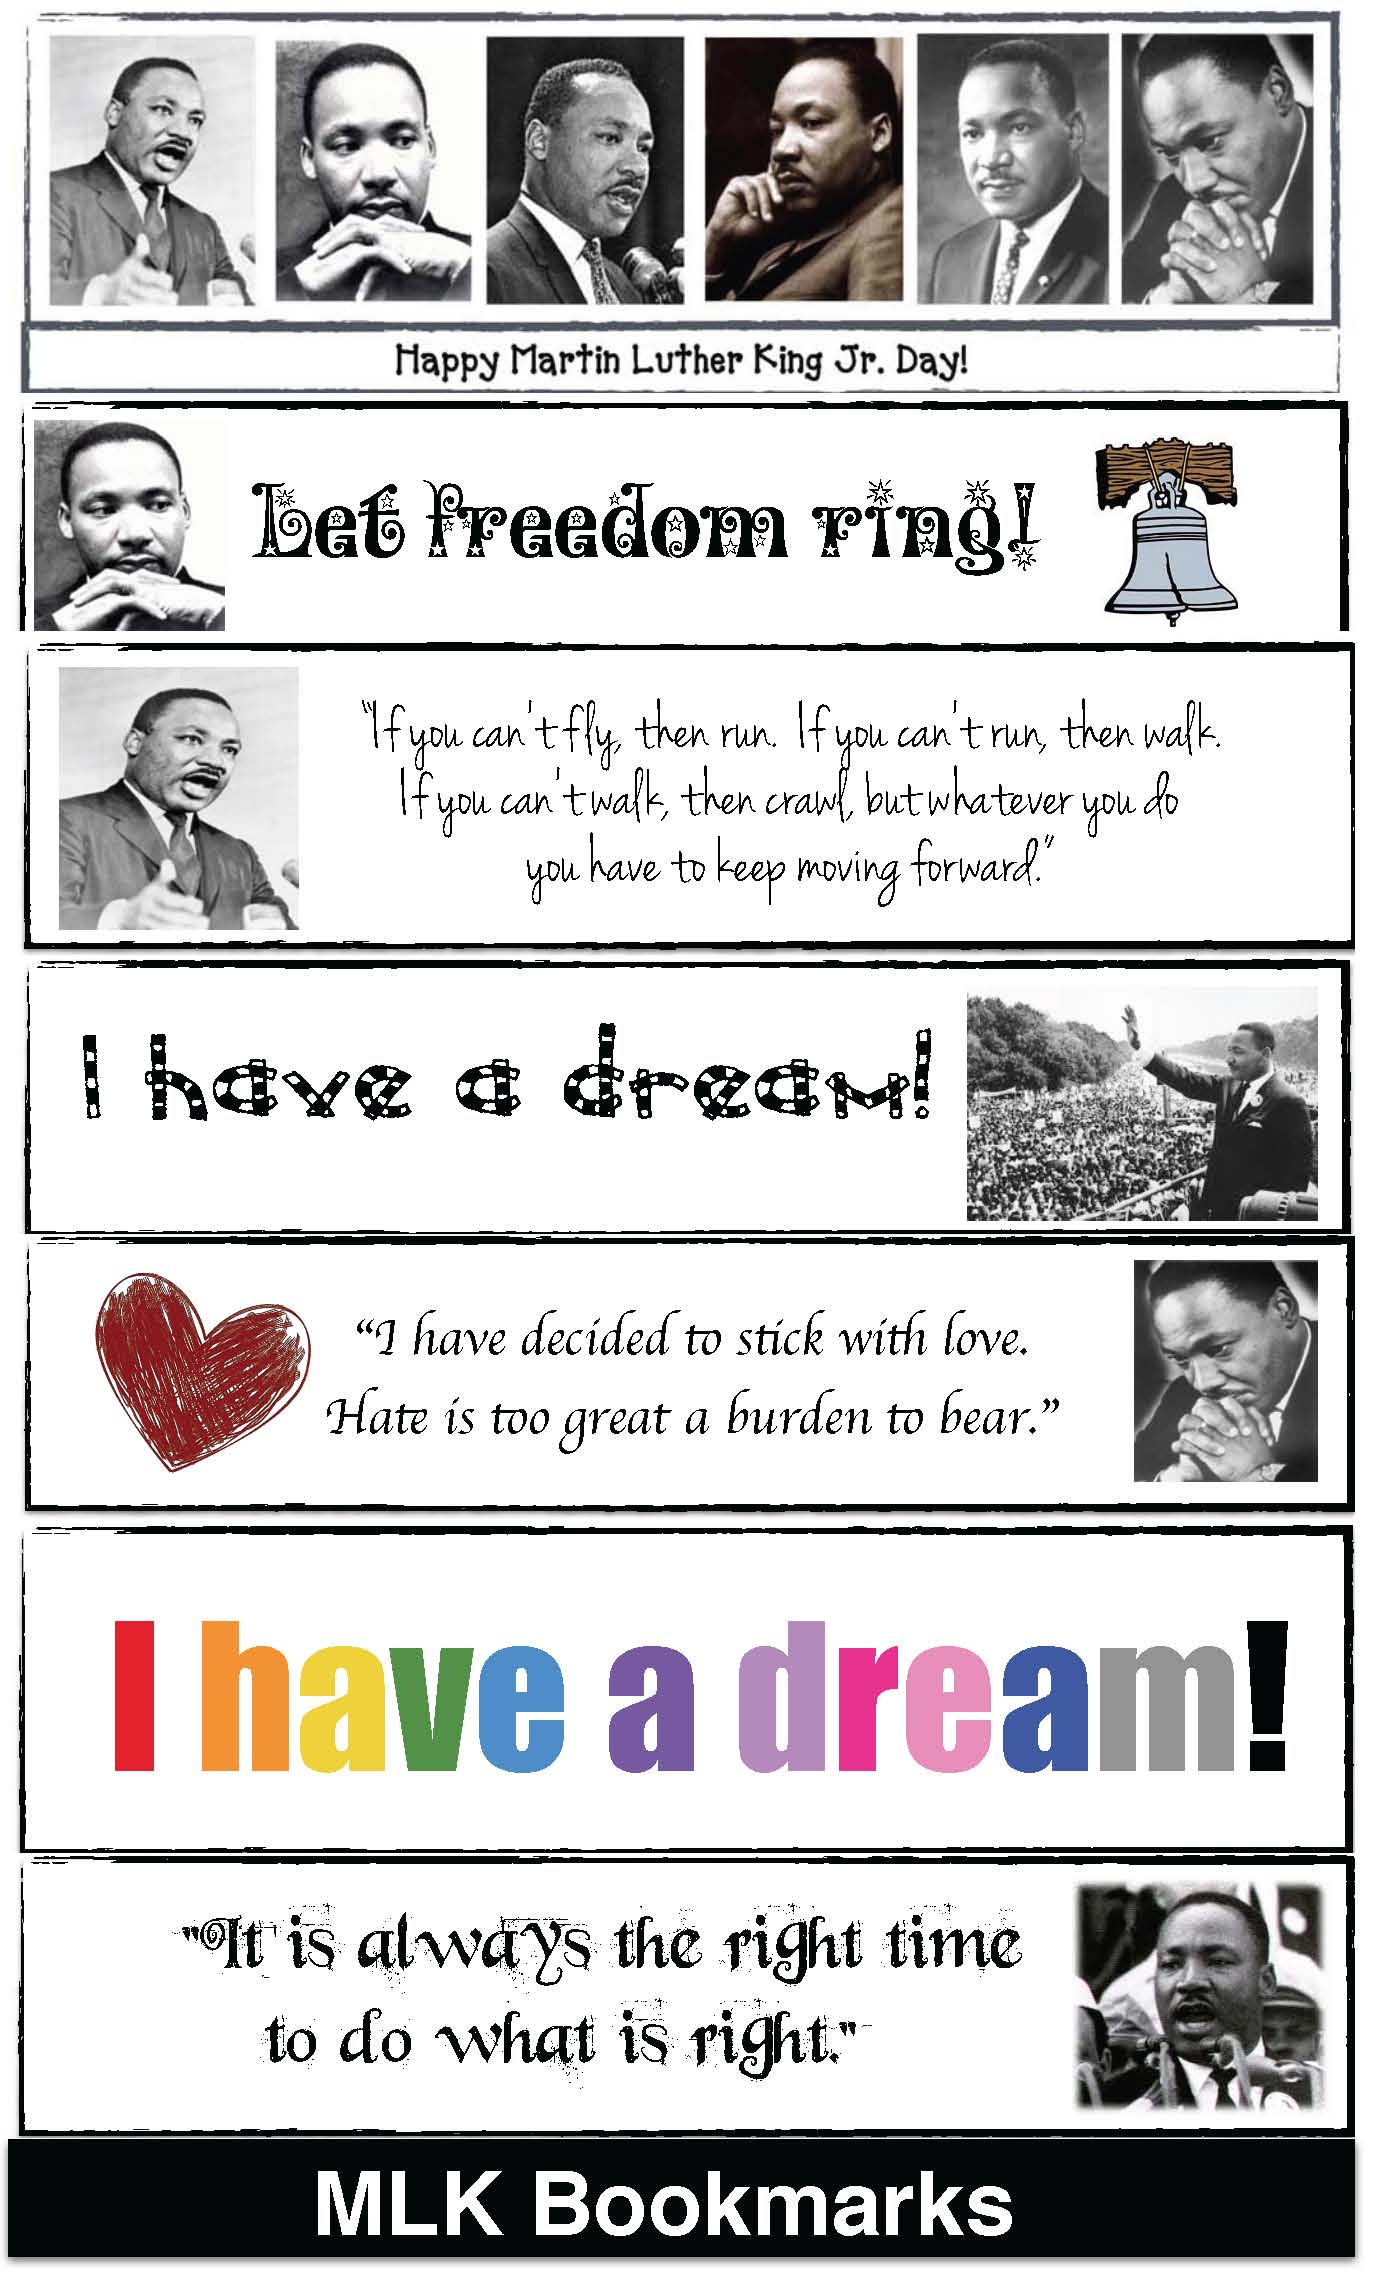 MLK ideas, MLK activities, bibliography of martin luther king books, KWL for martin luther king, martin luther king day activities, martin luther king activities, martin luther king crafts, martin luther king sites, martin luther king books, martin luther king activities for kids, martin luther king writing promtps, writing prompts for january, MLK crafts, MLK writing promtps, MLK lessons for young children, good books for martin luther king day, KWL for MLK, KWL for martin luther king, MLK bookmark, martin luther king bookmark, martin luther king bookmark, MLK venn diagrams, martin luther king venn diagrams, MKL dictionary, diversity lessons, diversity activities